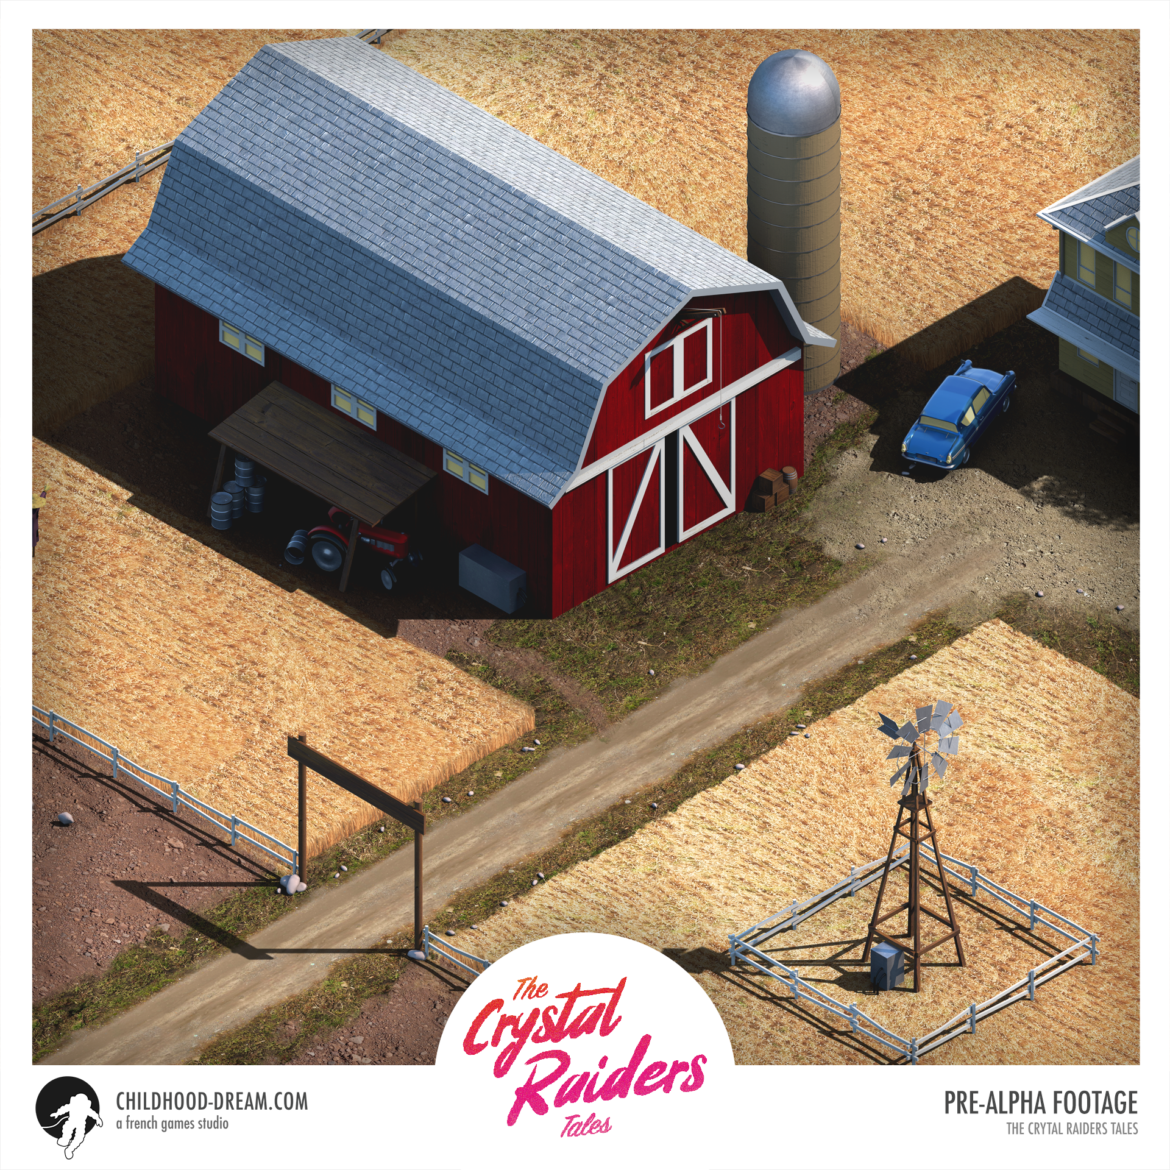 Ferme isometrie, the Crystal Raiders Tales, Barn Ranch isometric, indiegame, childhood dream, sci-fi, RPG